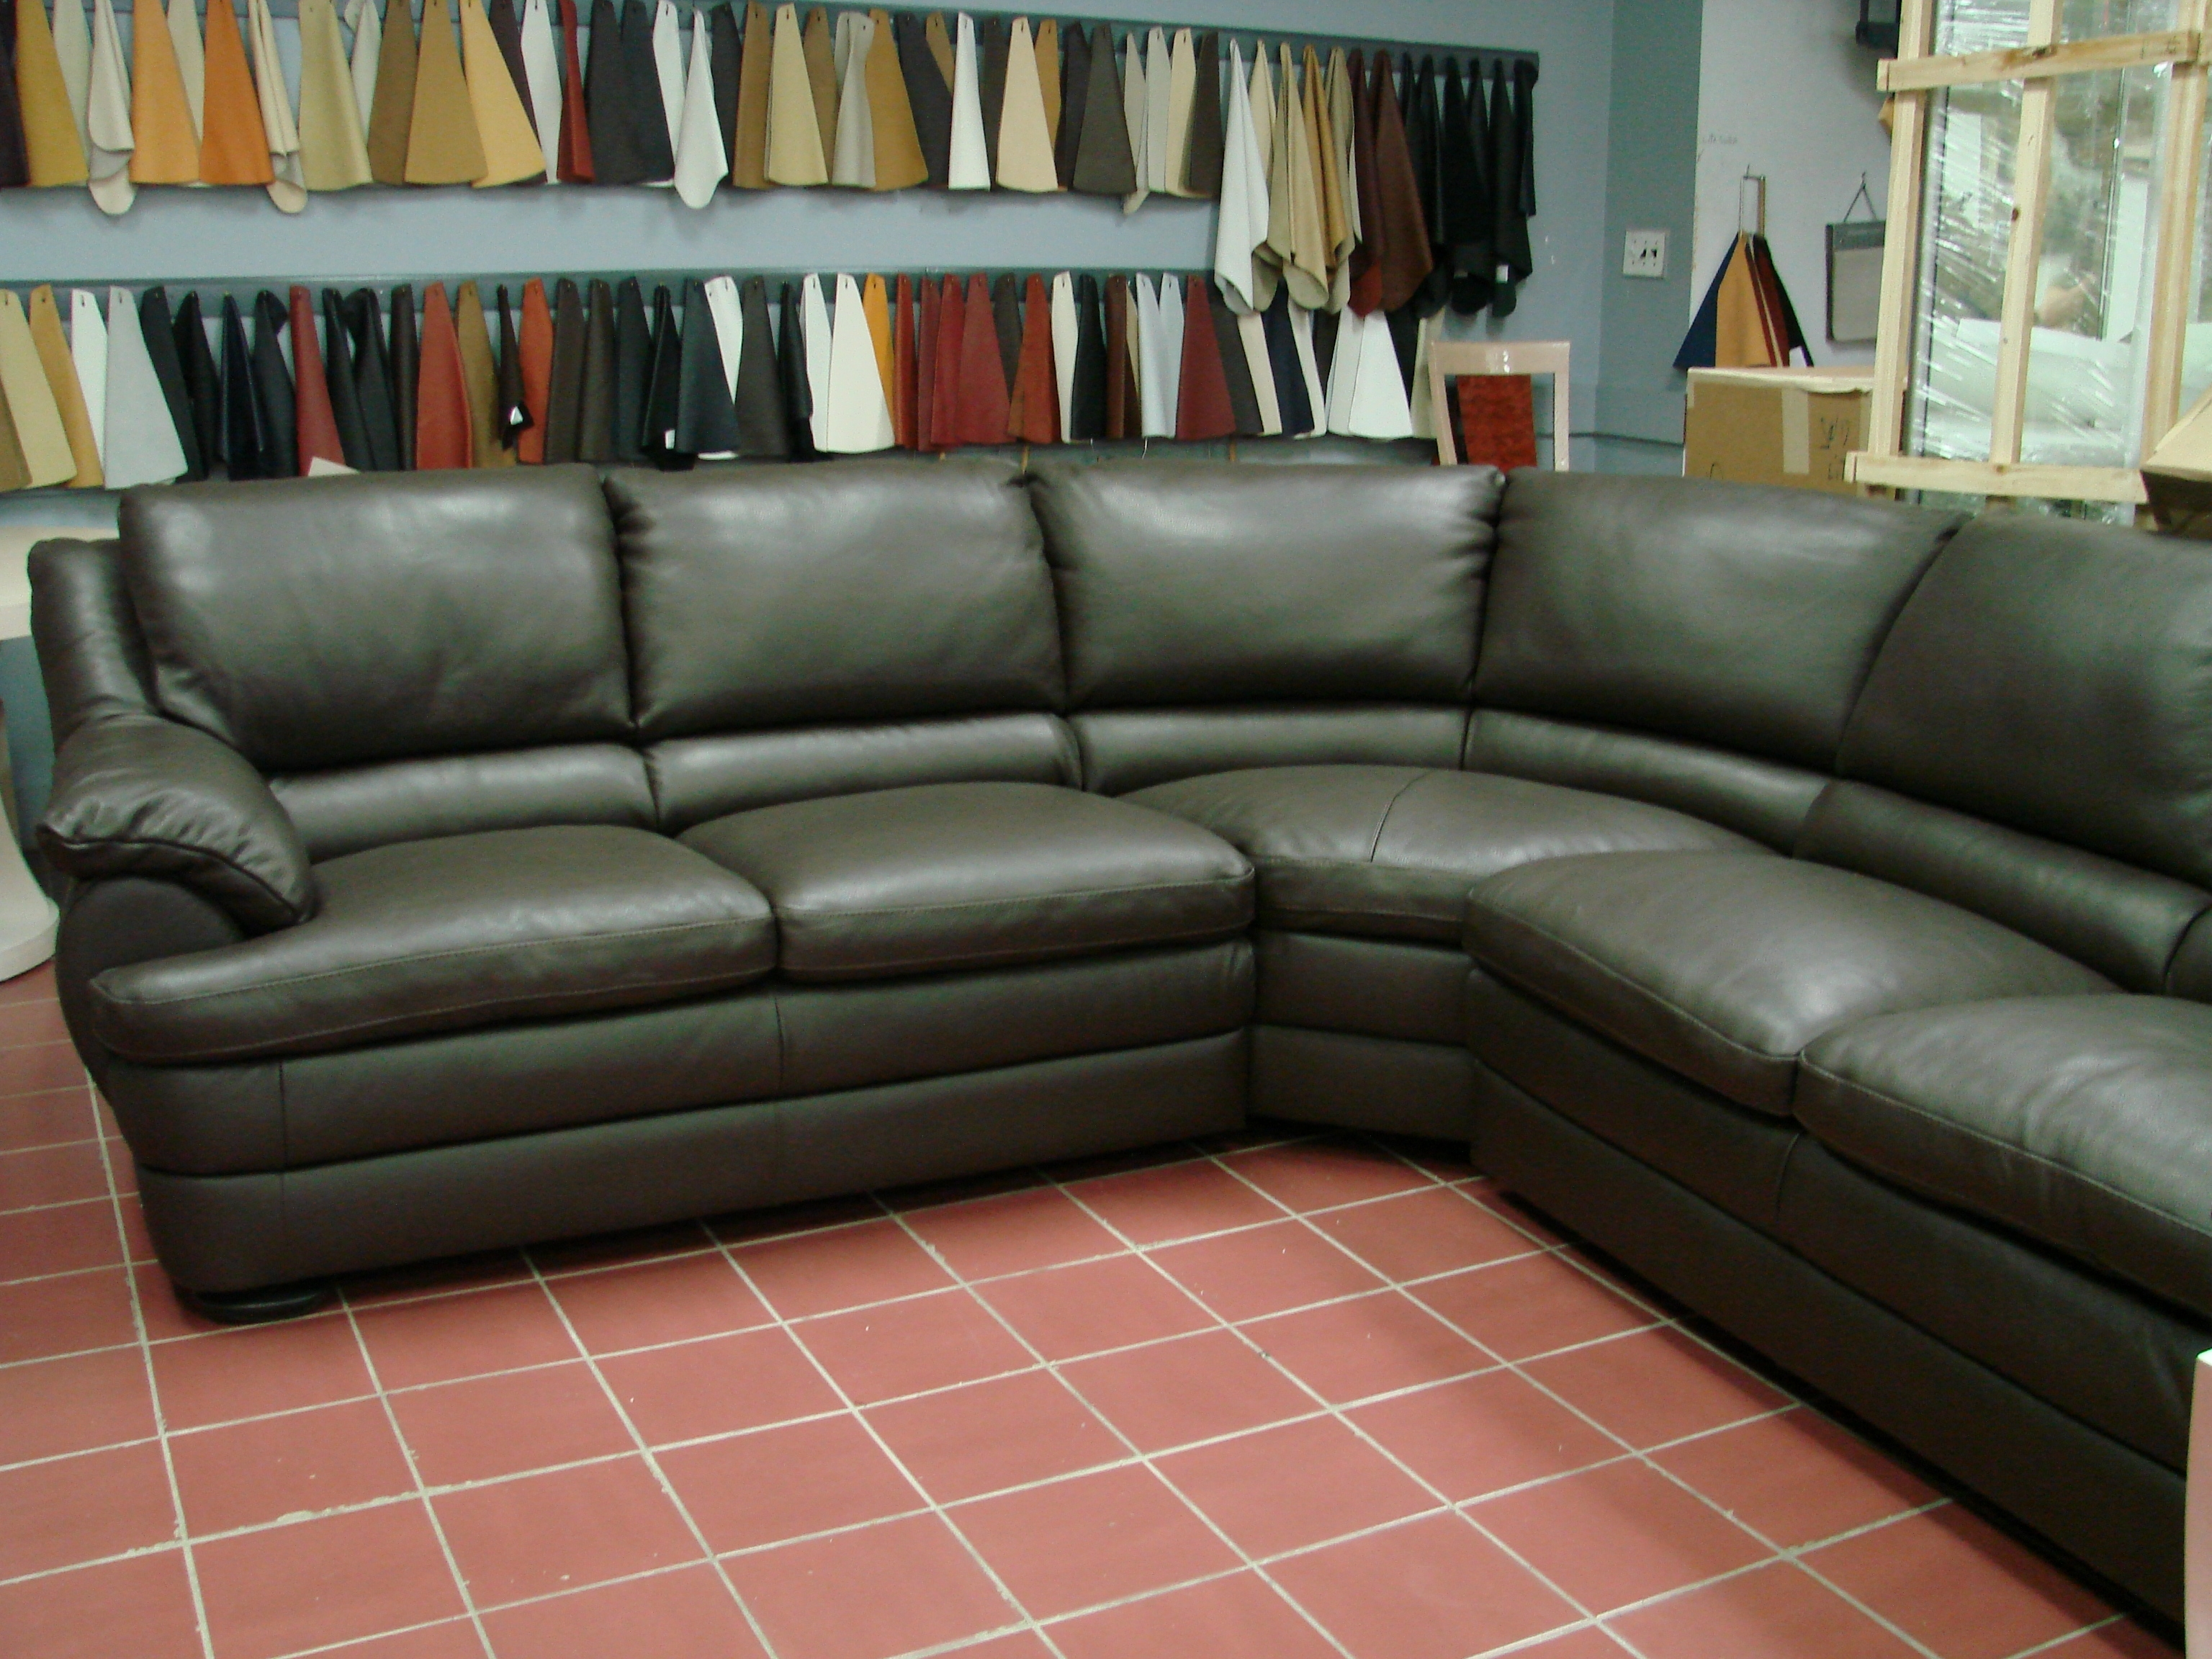 Leather Sectional Sofa With Recliners Sofas Ottawa For Sale Couch pertaining to Ottawa Sectional Sofas (Image 4 of 10)